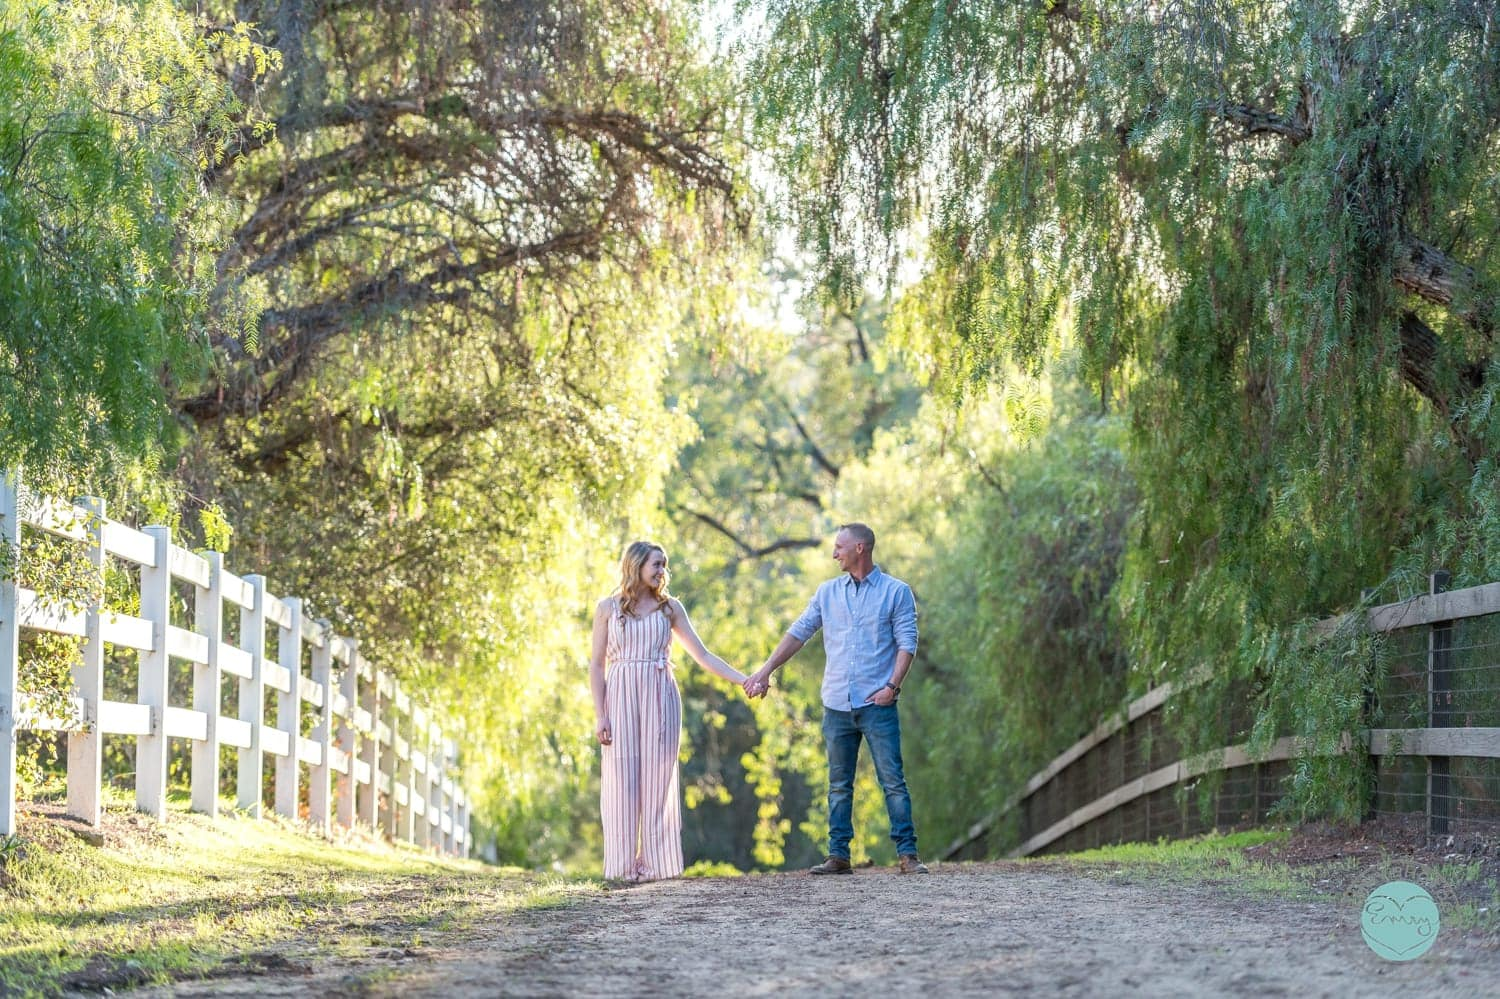 Couple standing in the middle of a dirt road holding hands.